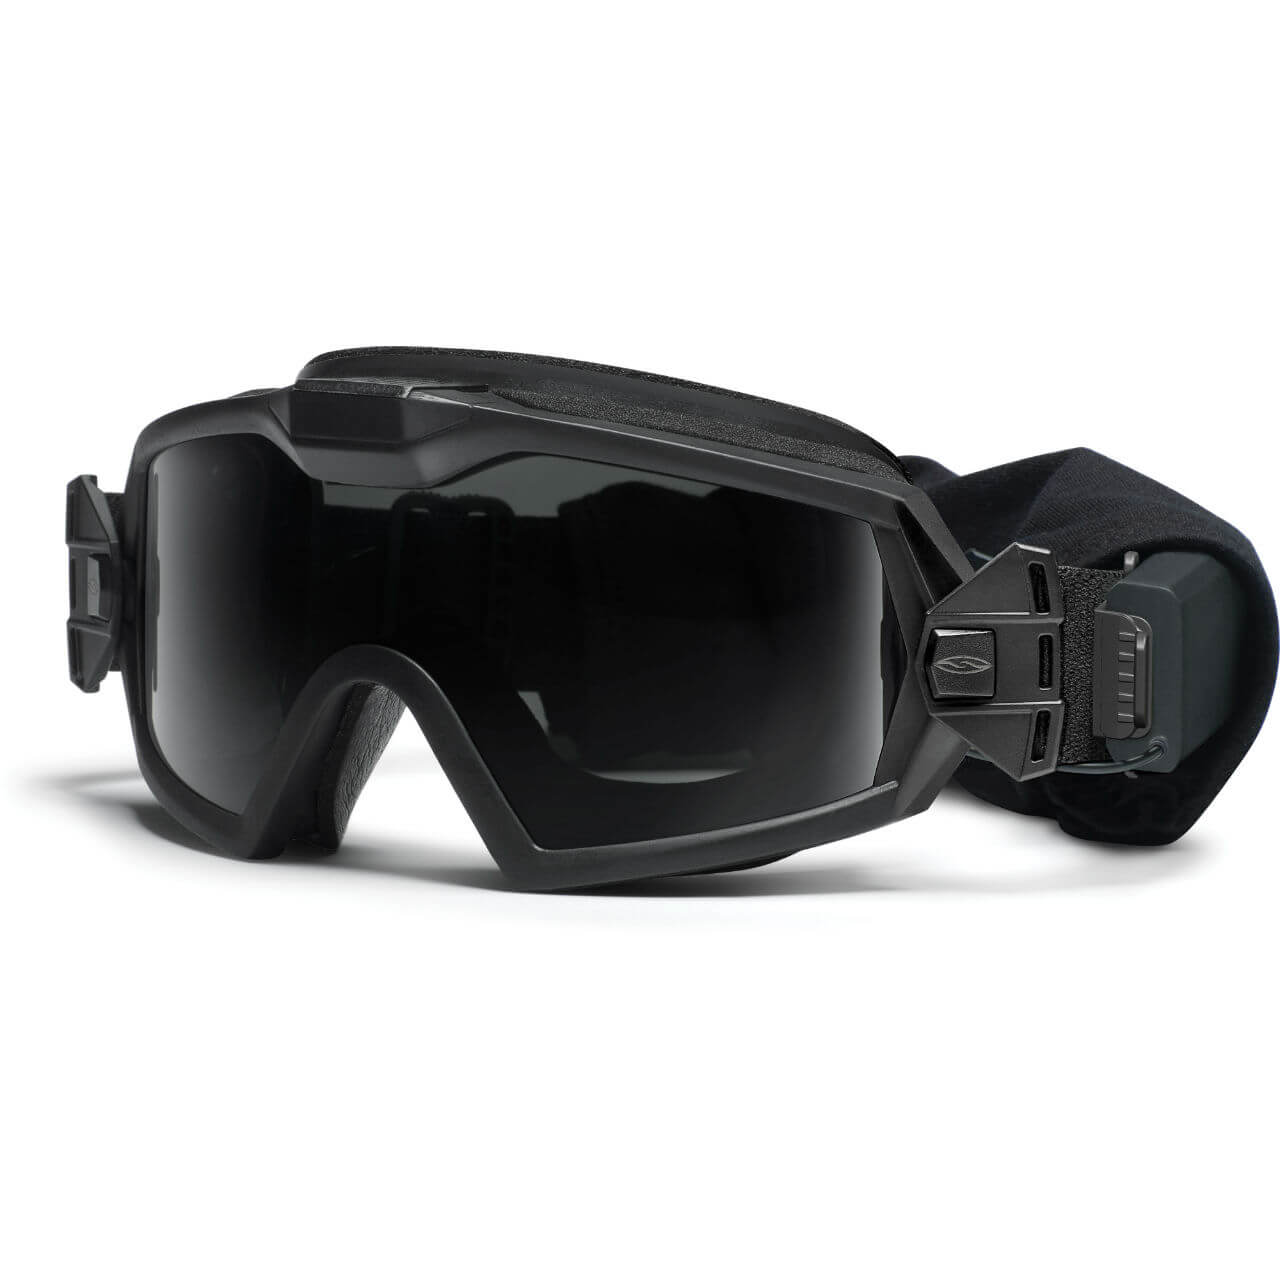 d67712897efc7 Smith Optics Elite - Outside The Wire (OTW) Turbo Fan Tactical Goggles  (Black